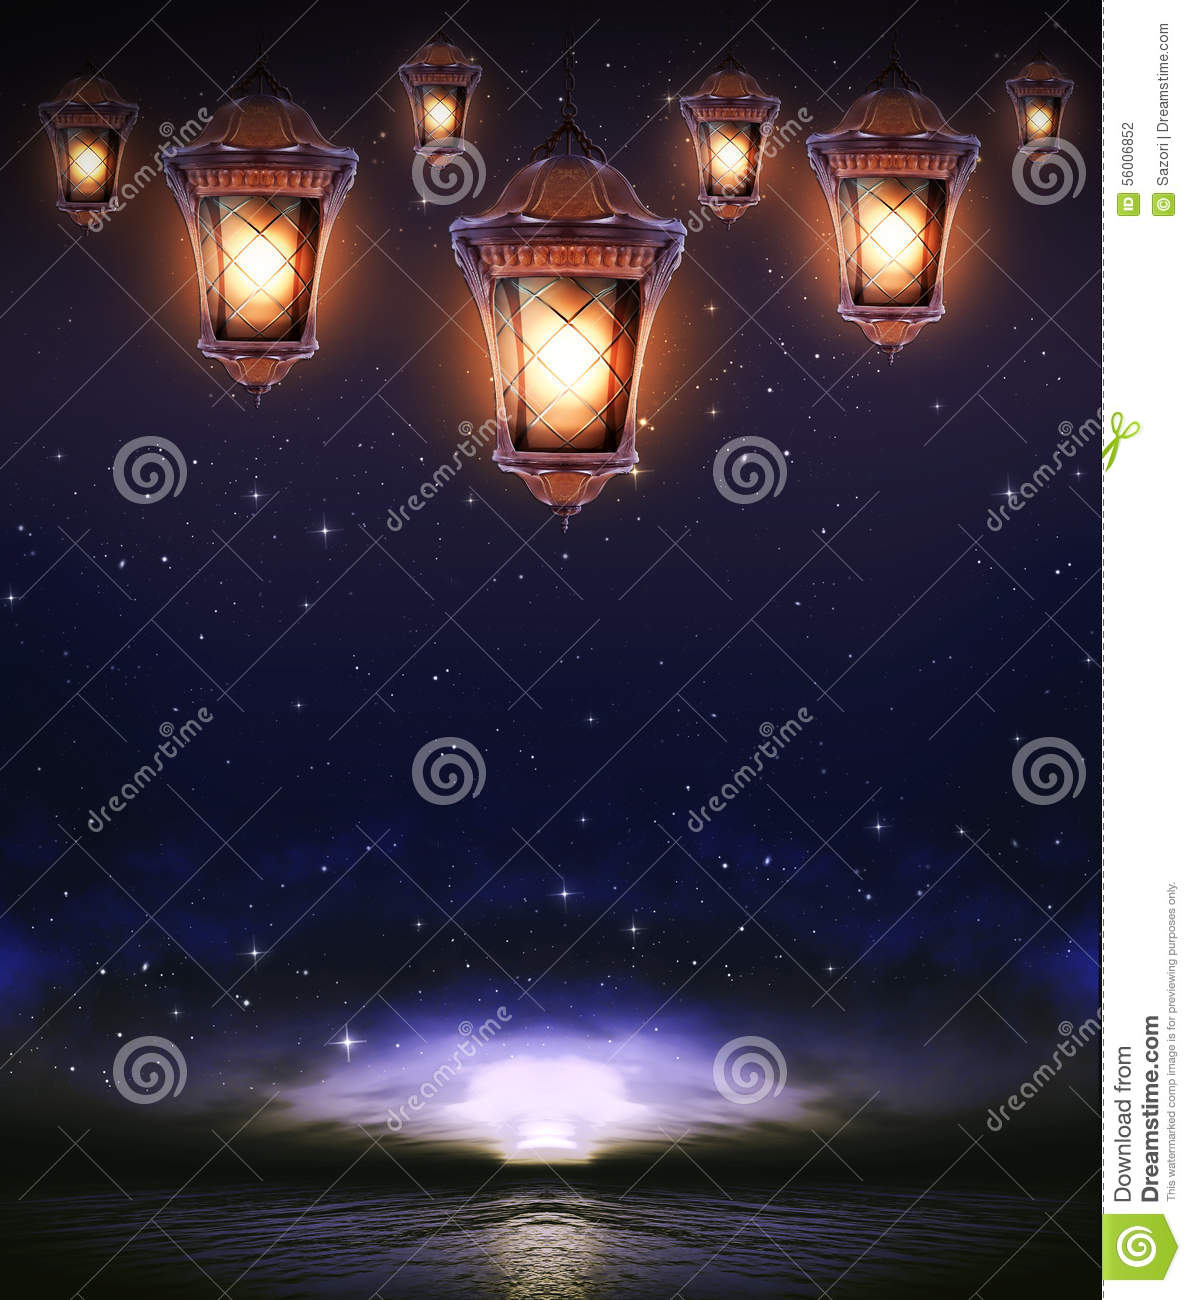 Hanging lamp with magic abstract background